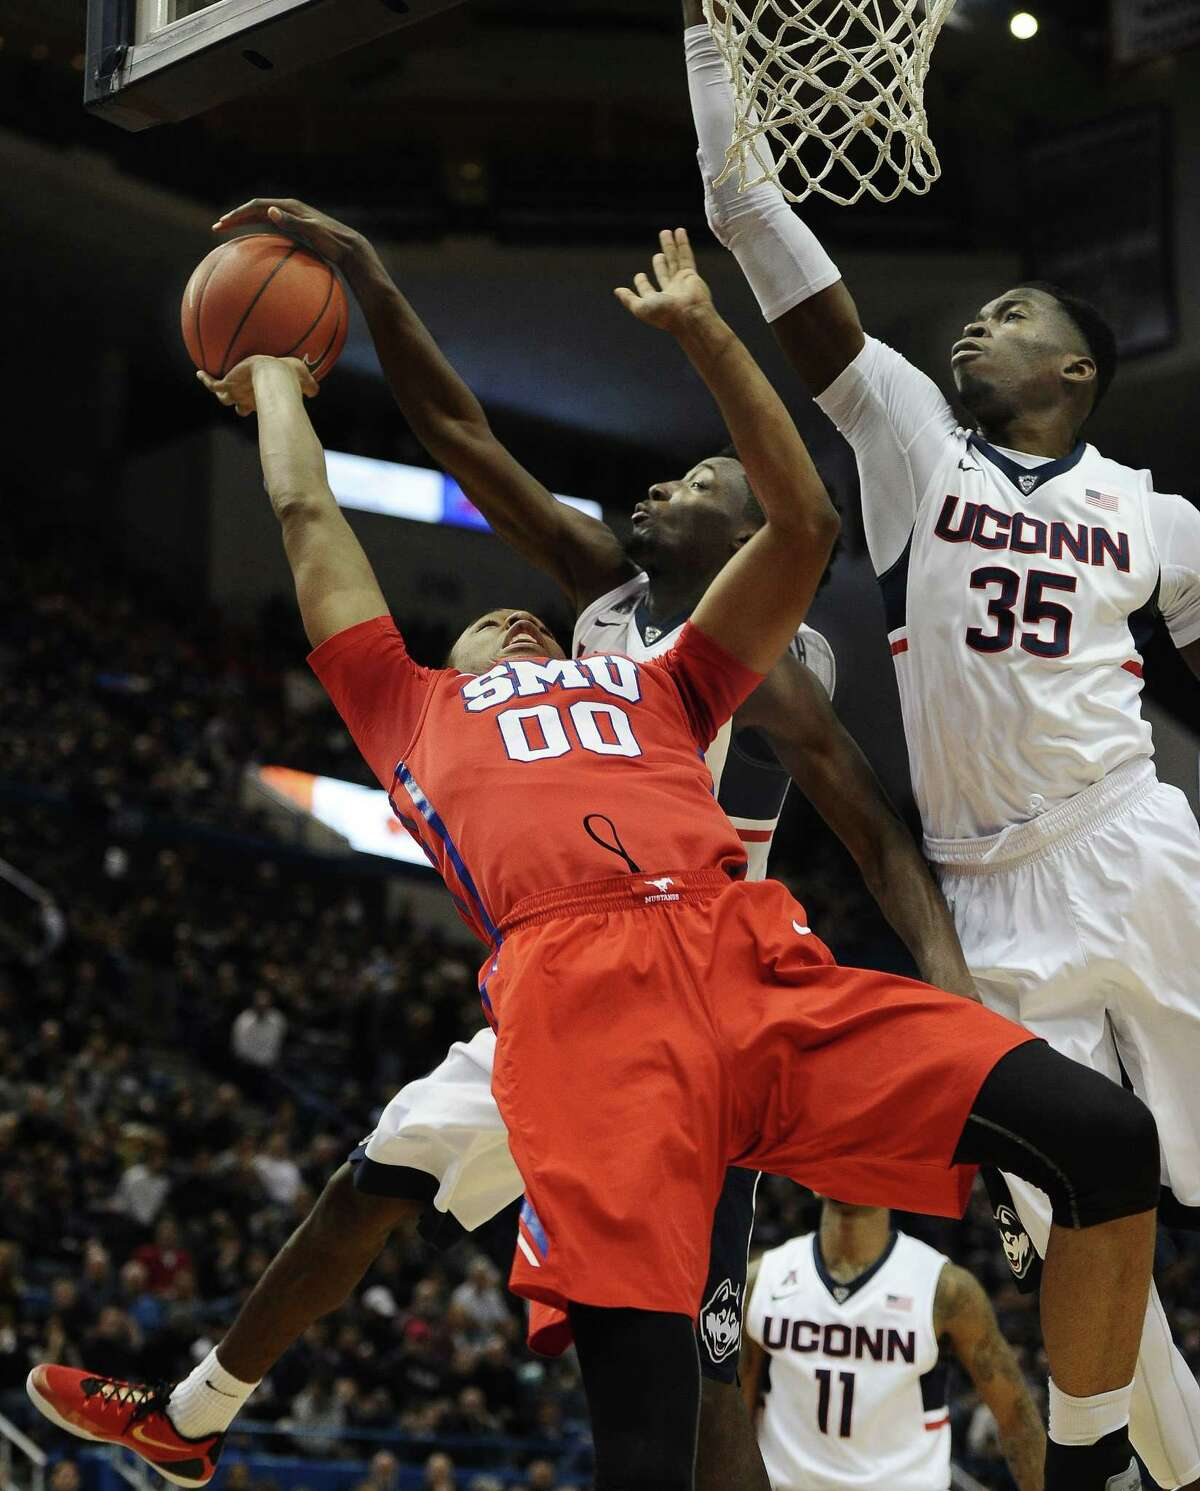 UConn's Daniel Hamilton, center, blocks a shot by SMU's Ben Moore as Amida Brimah helps out during a March 1 game in Hartford.